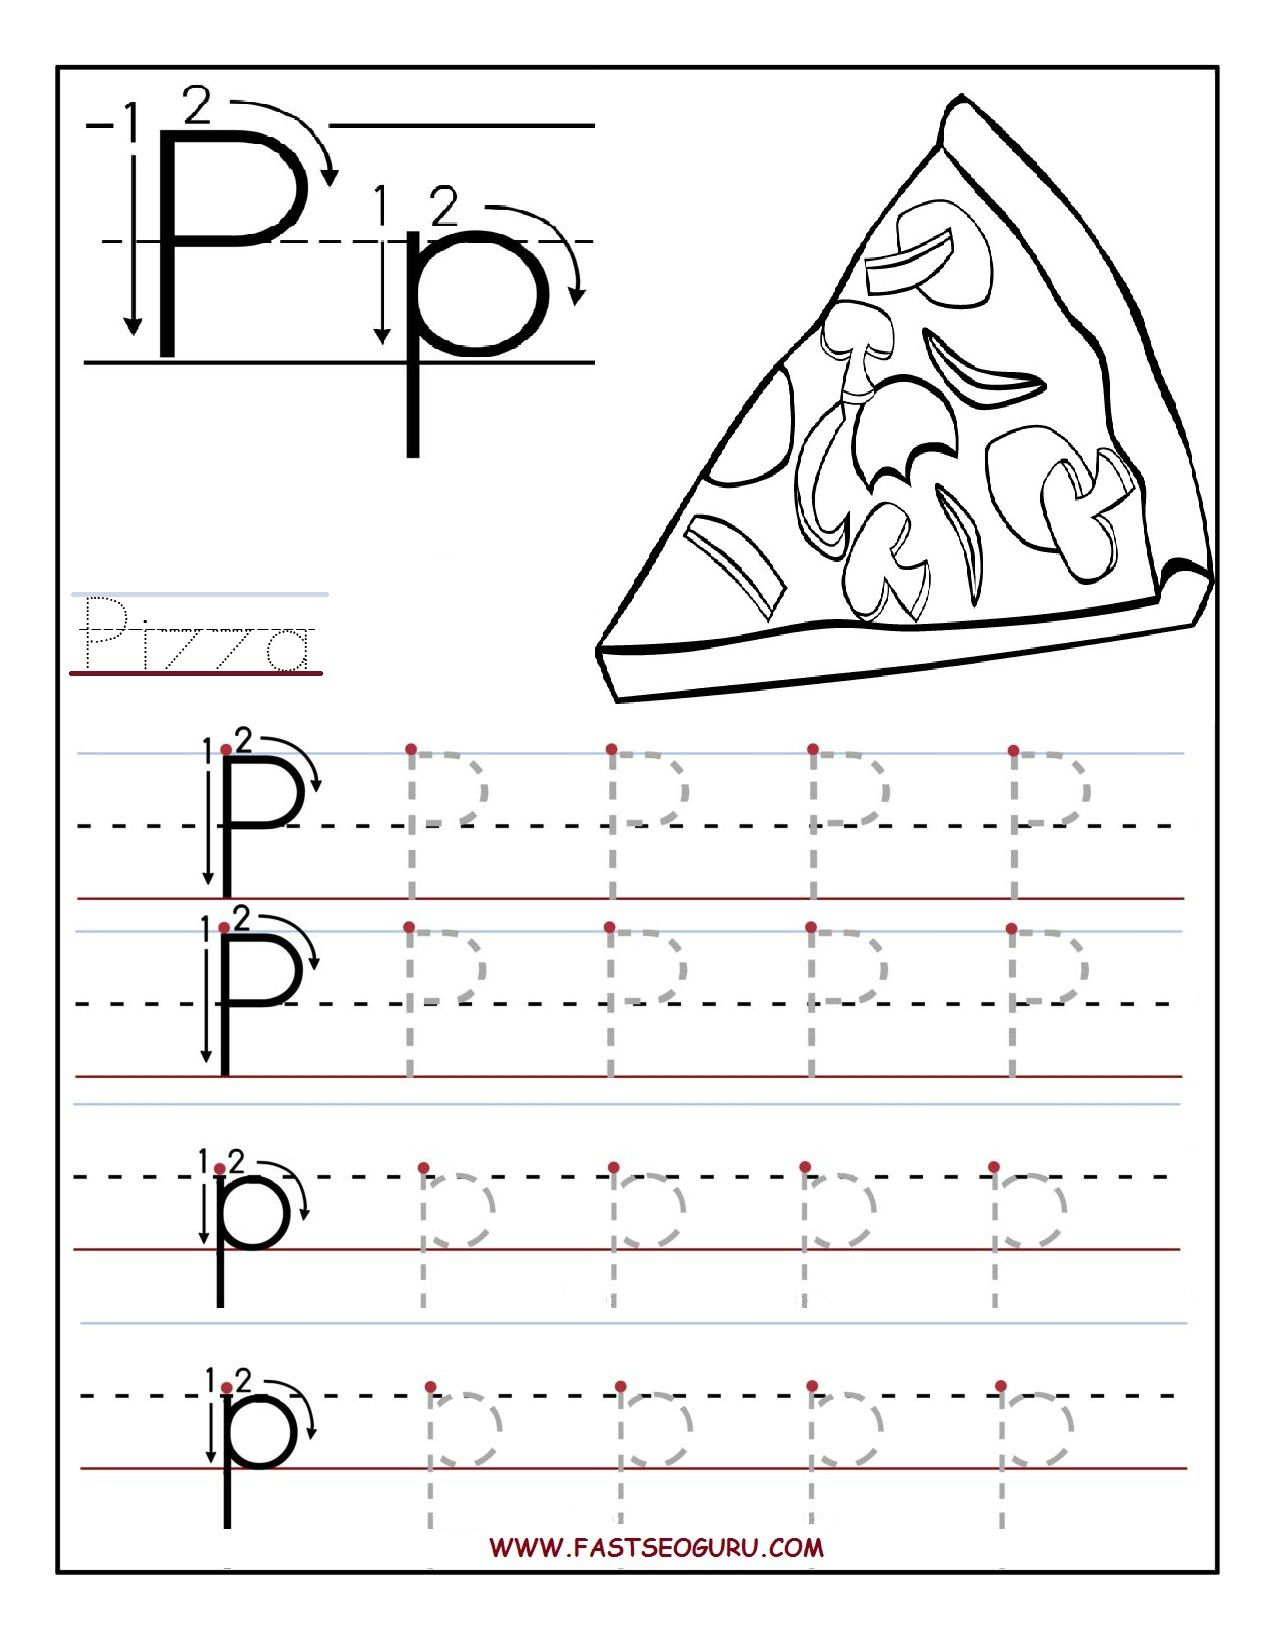 Printable Letter P Tracing Worksheets For Preschool in Letter P Tracing Sheet